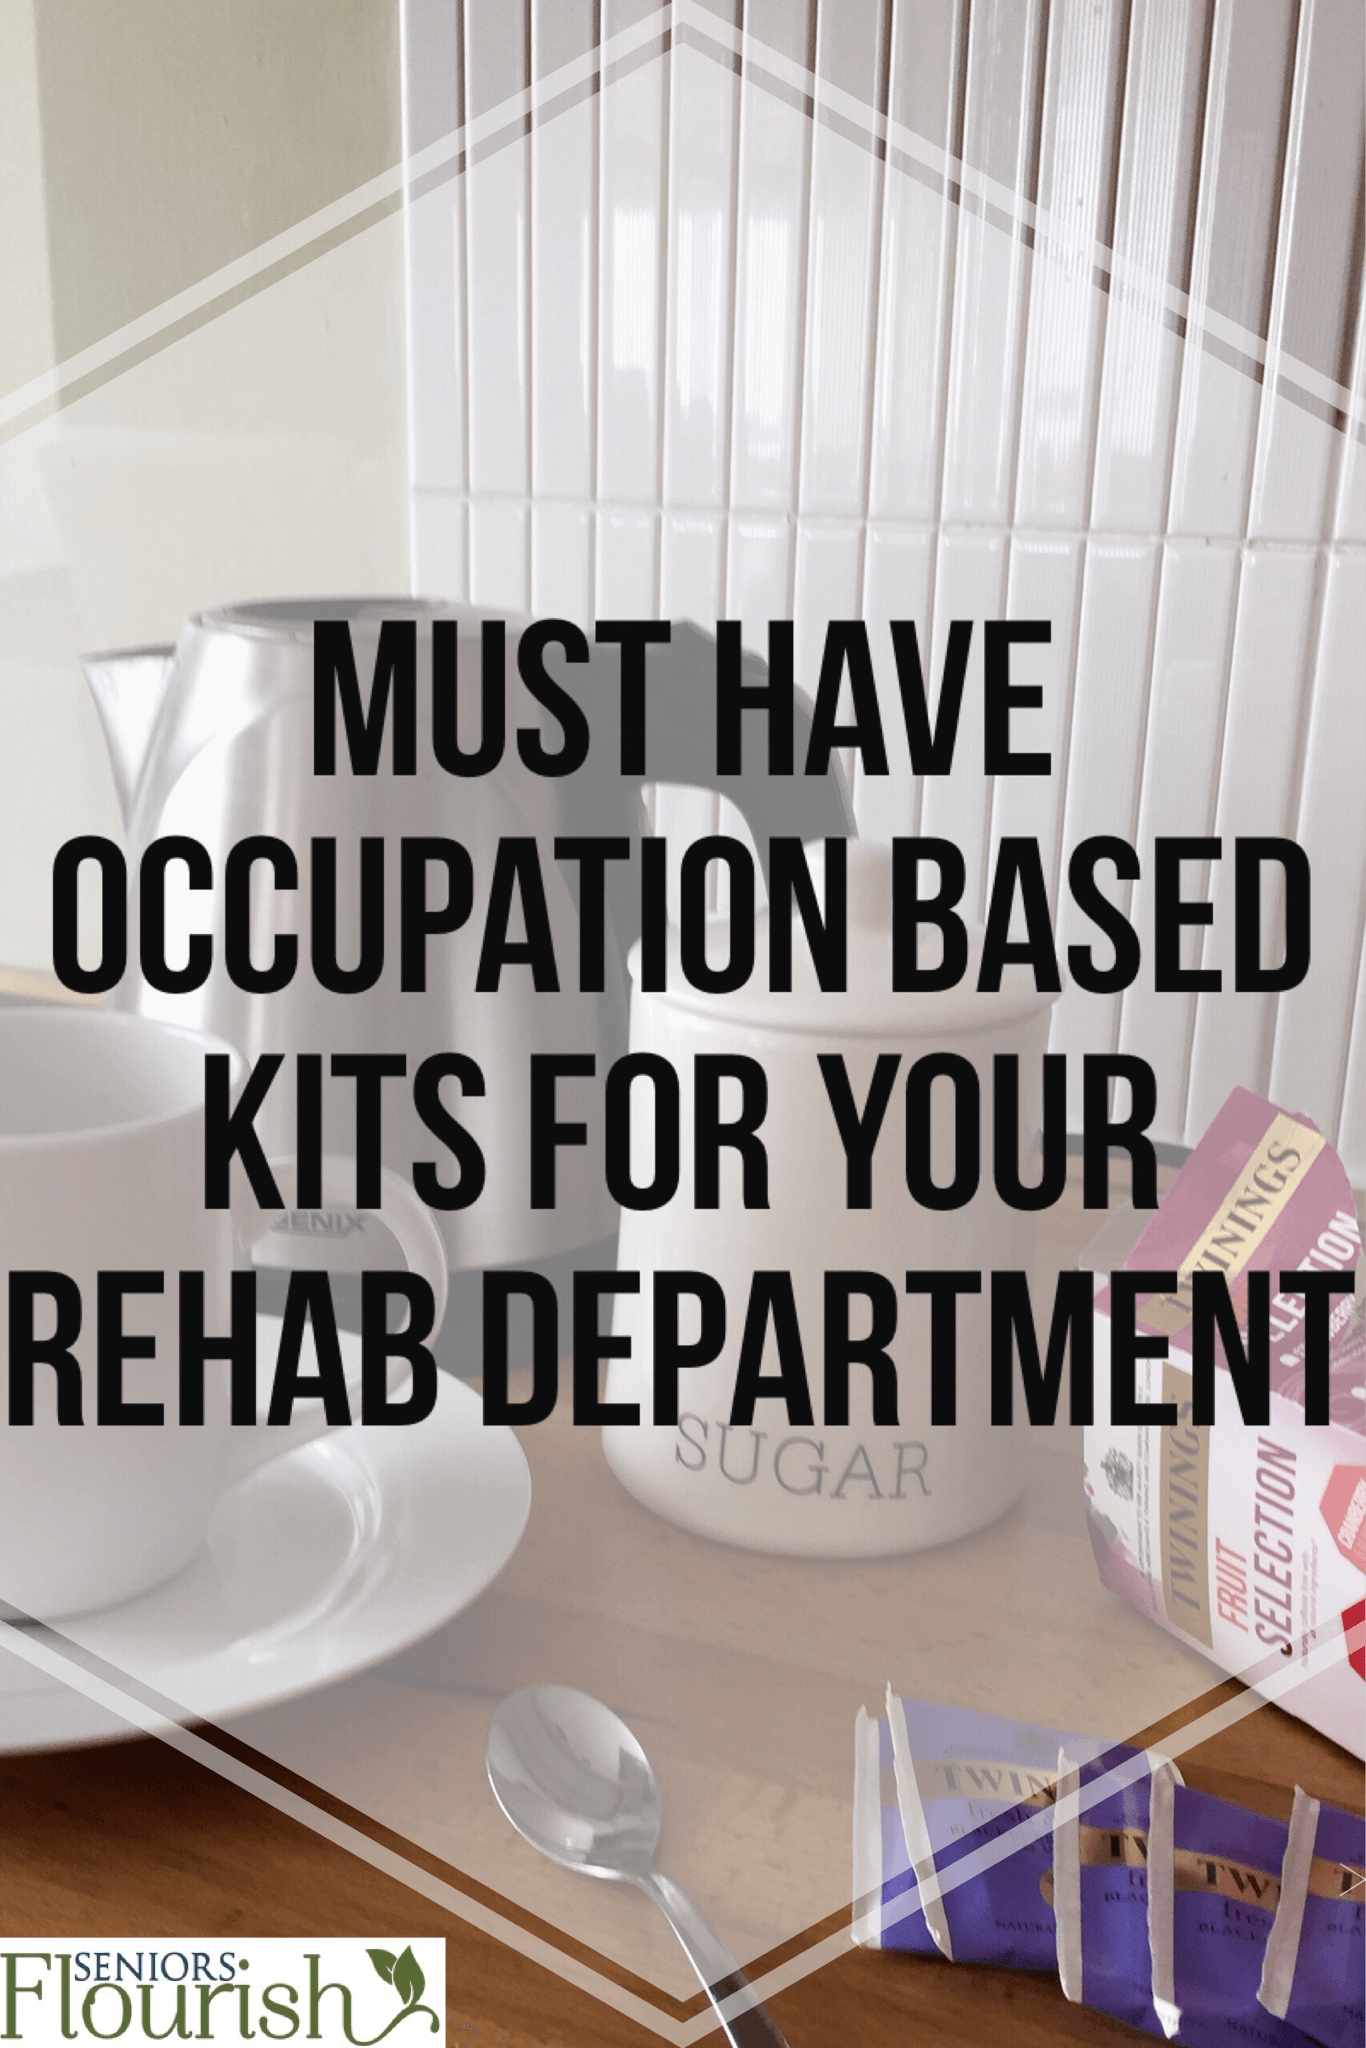 Check Out This Great List Of Occupation Based Kits For